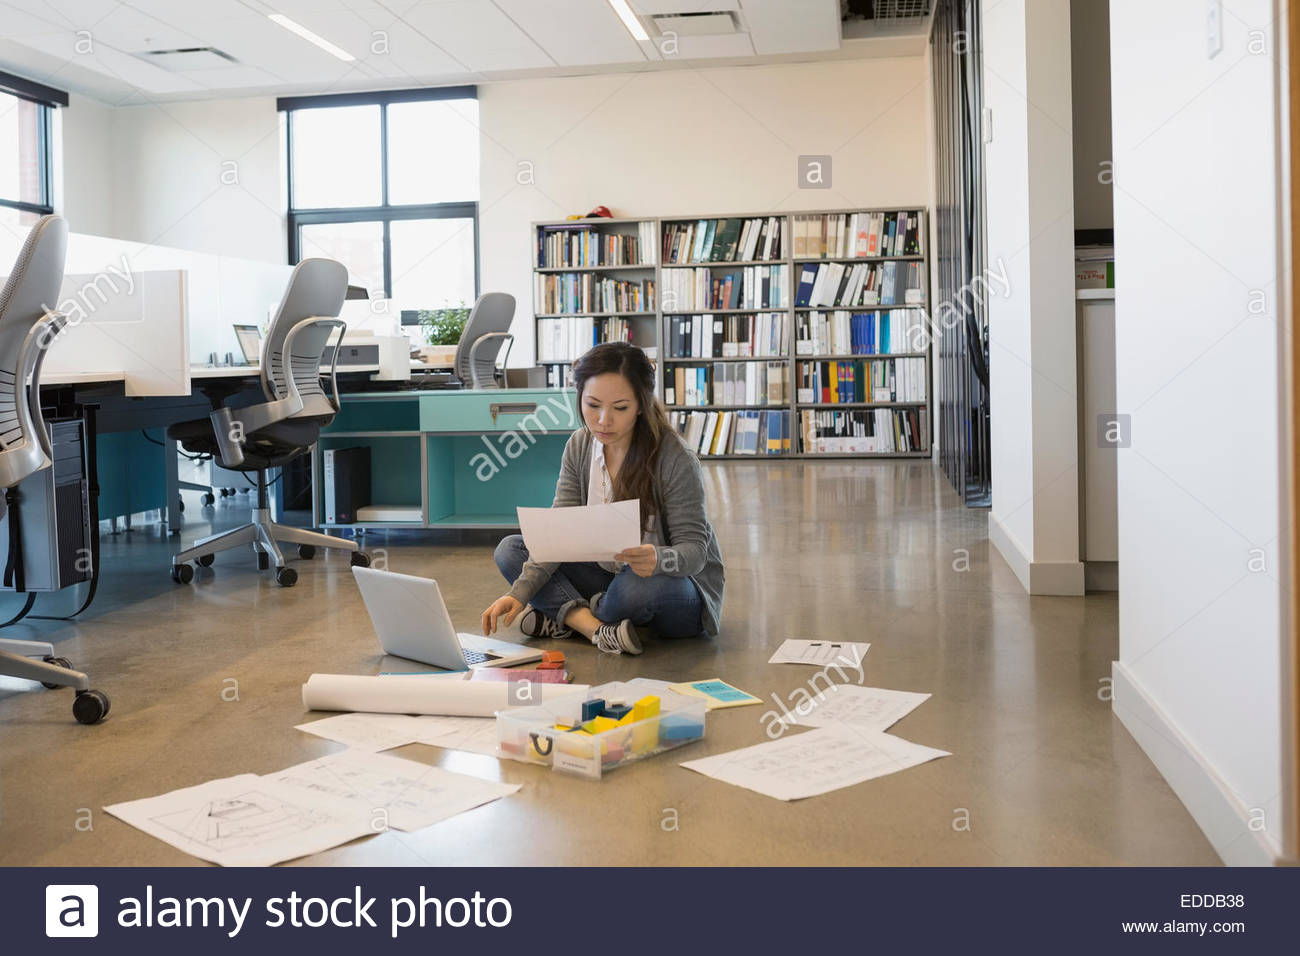 Designer working at laptop in office Photo Stock